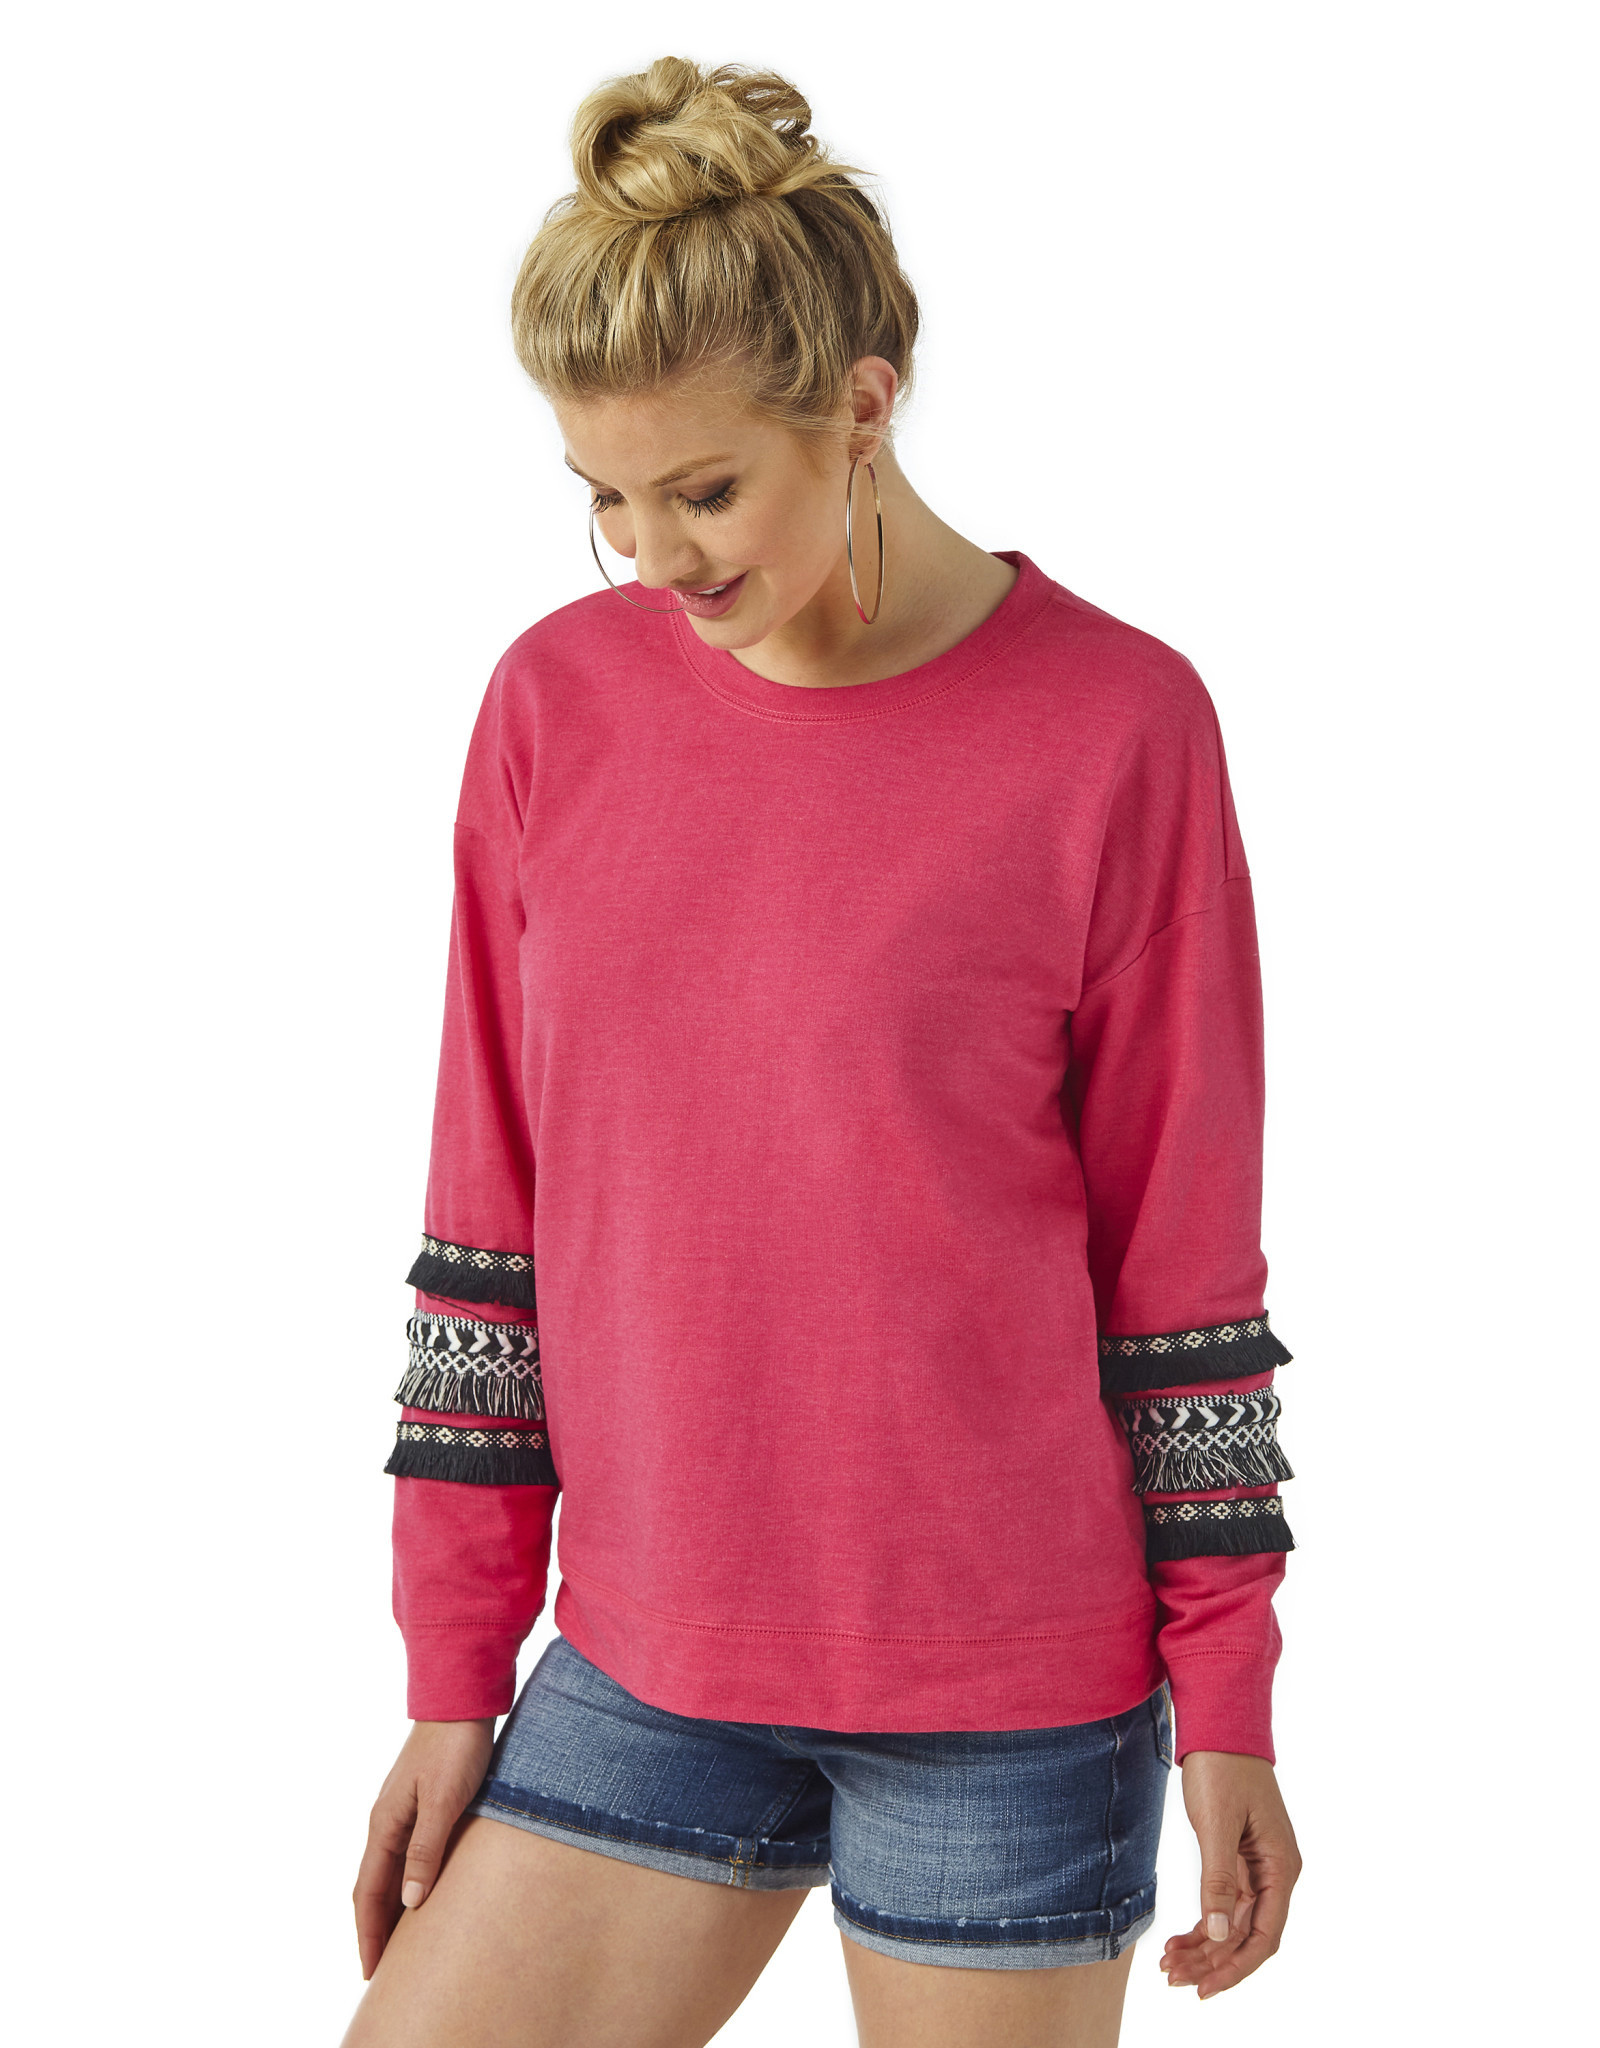 Womens Wrangler Hot Pink Sweatshirt with Black Fringe